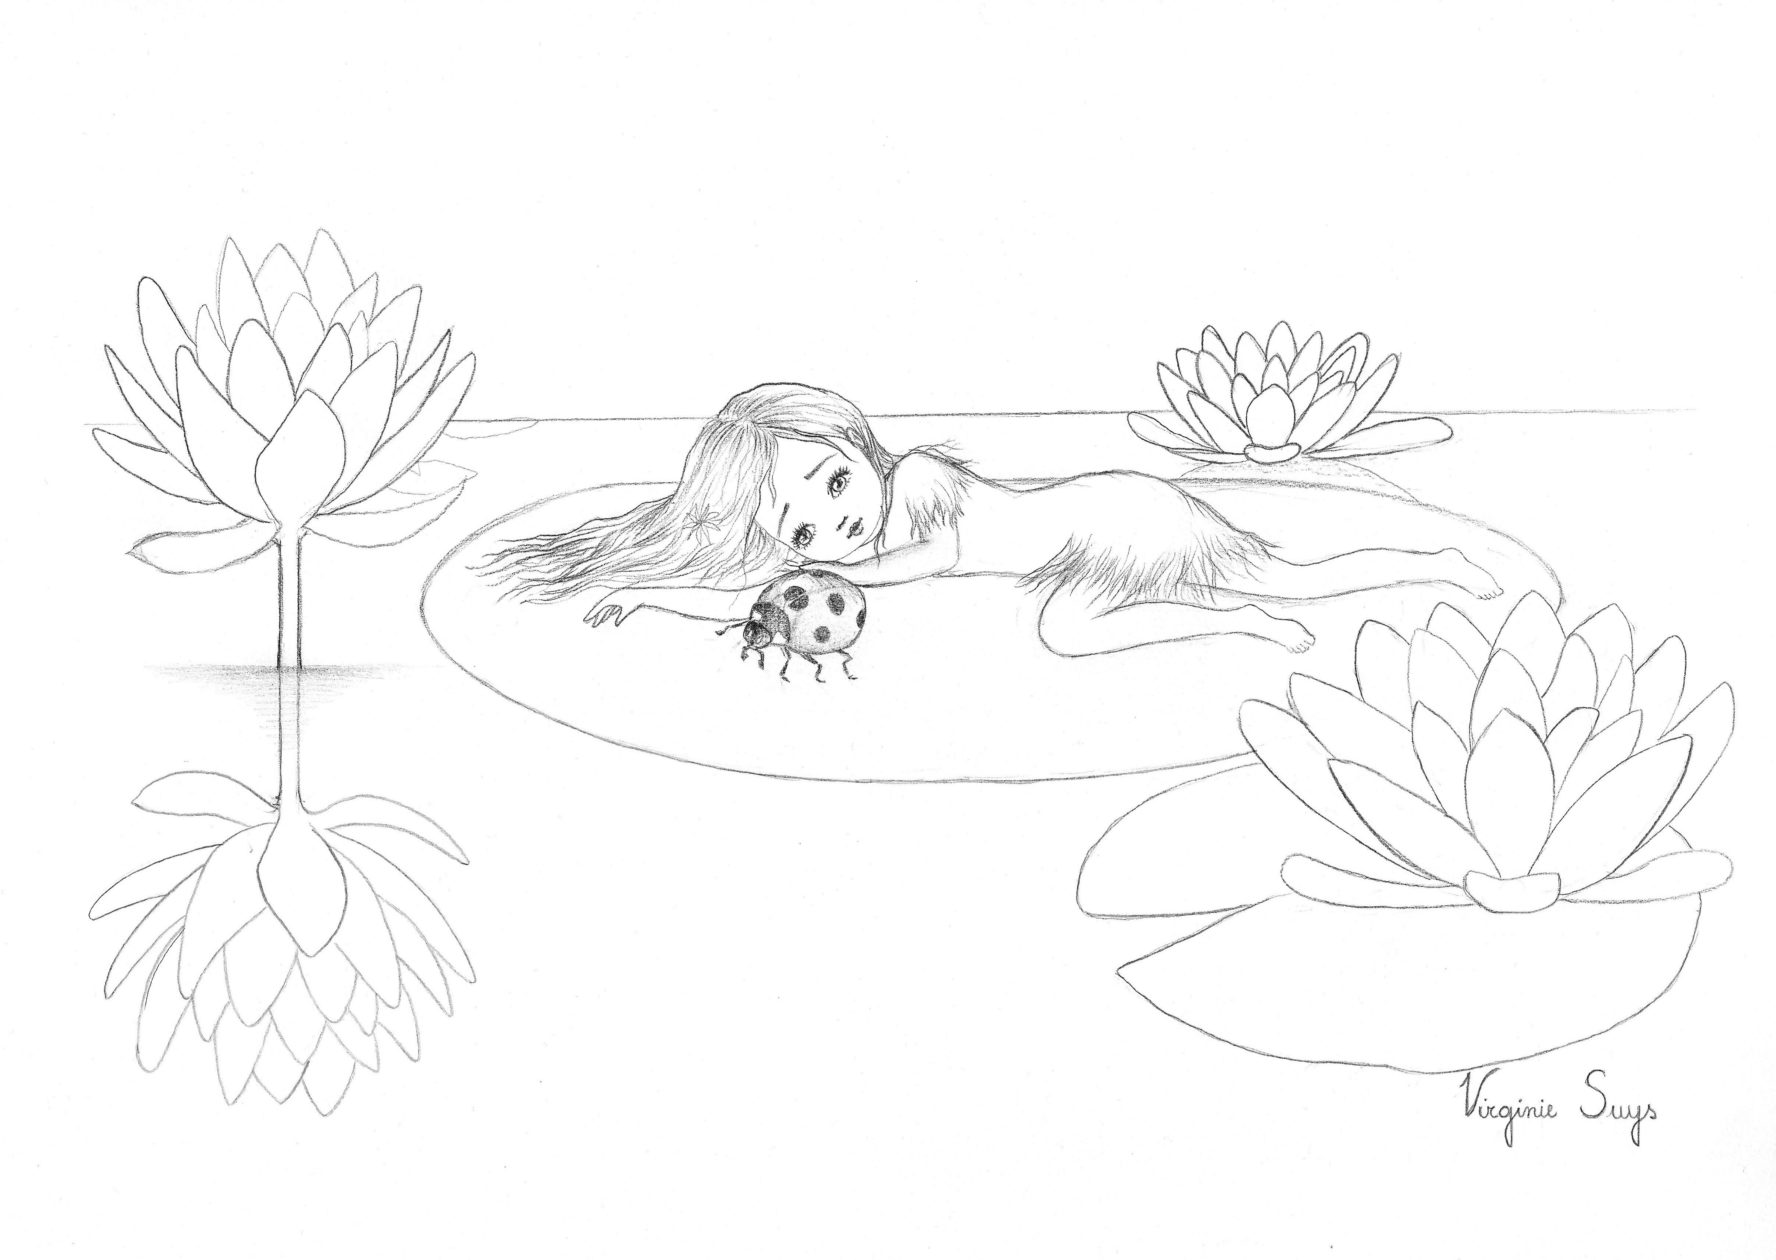 Virginie Suys Thumbelina by the waterlillys in black & white illustration